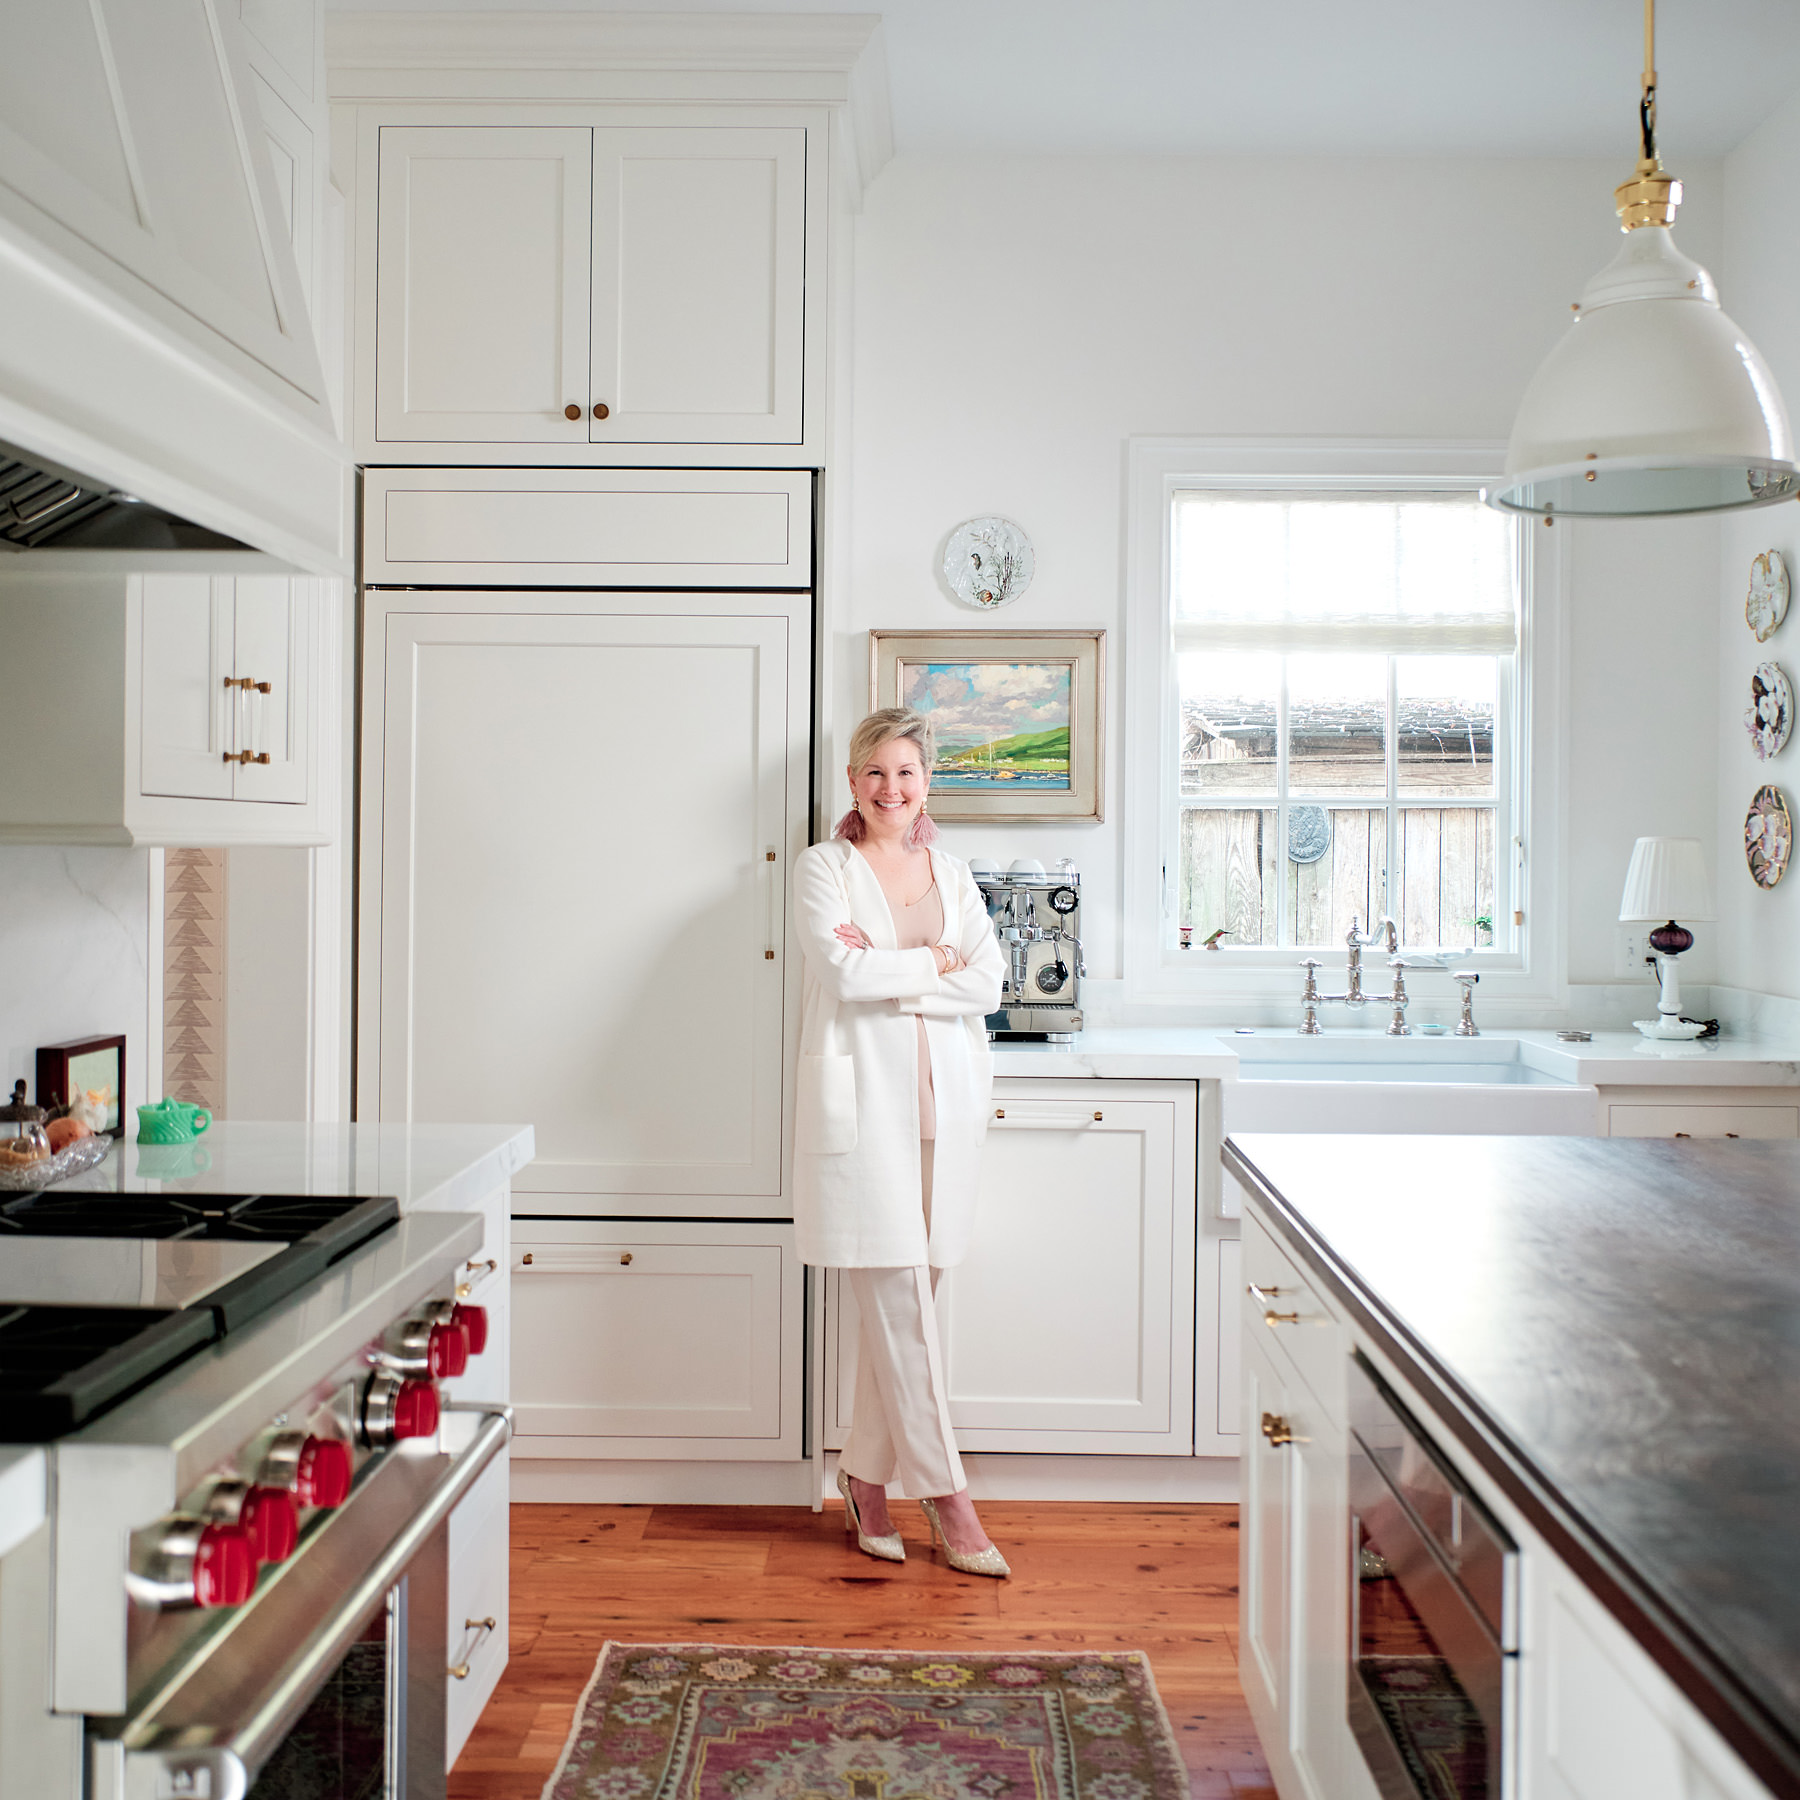 eli-turner-photography-woman-kitchen-interior-portrait-lauren2